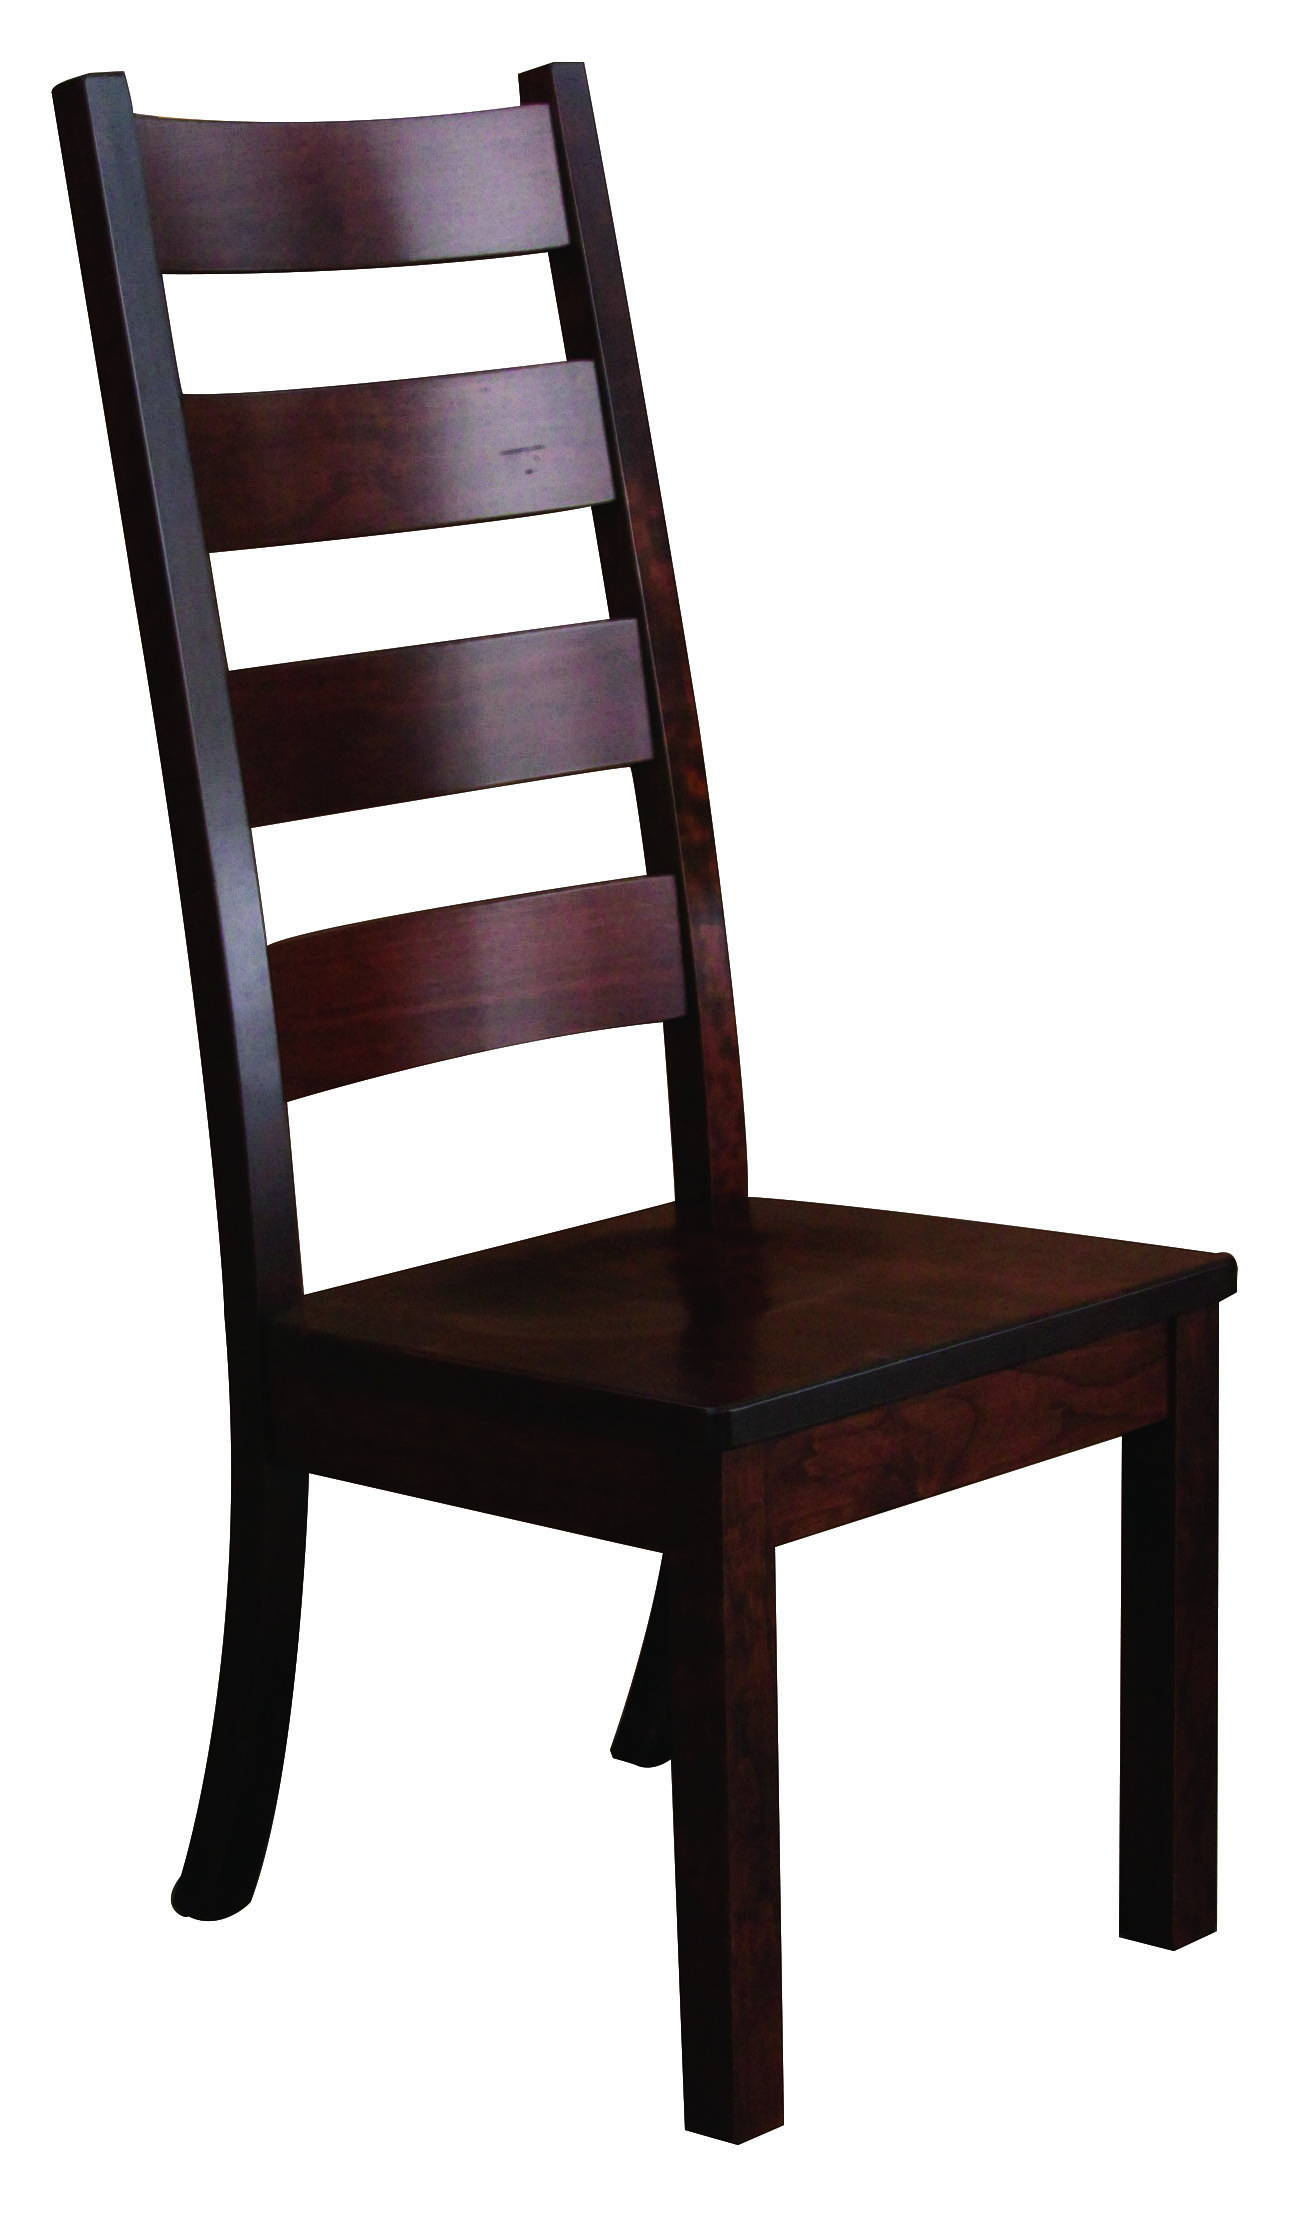 Western 46 Solid Wood, Handcrafted Kitchen Chair or DIning Chair from Harvest Home Interiors Amish Furniture